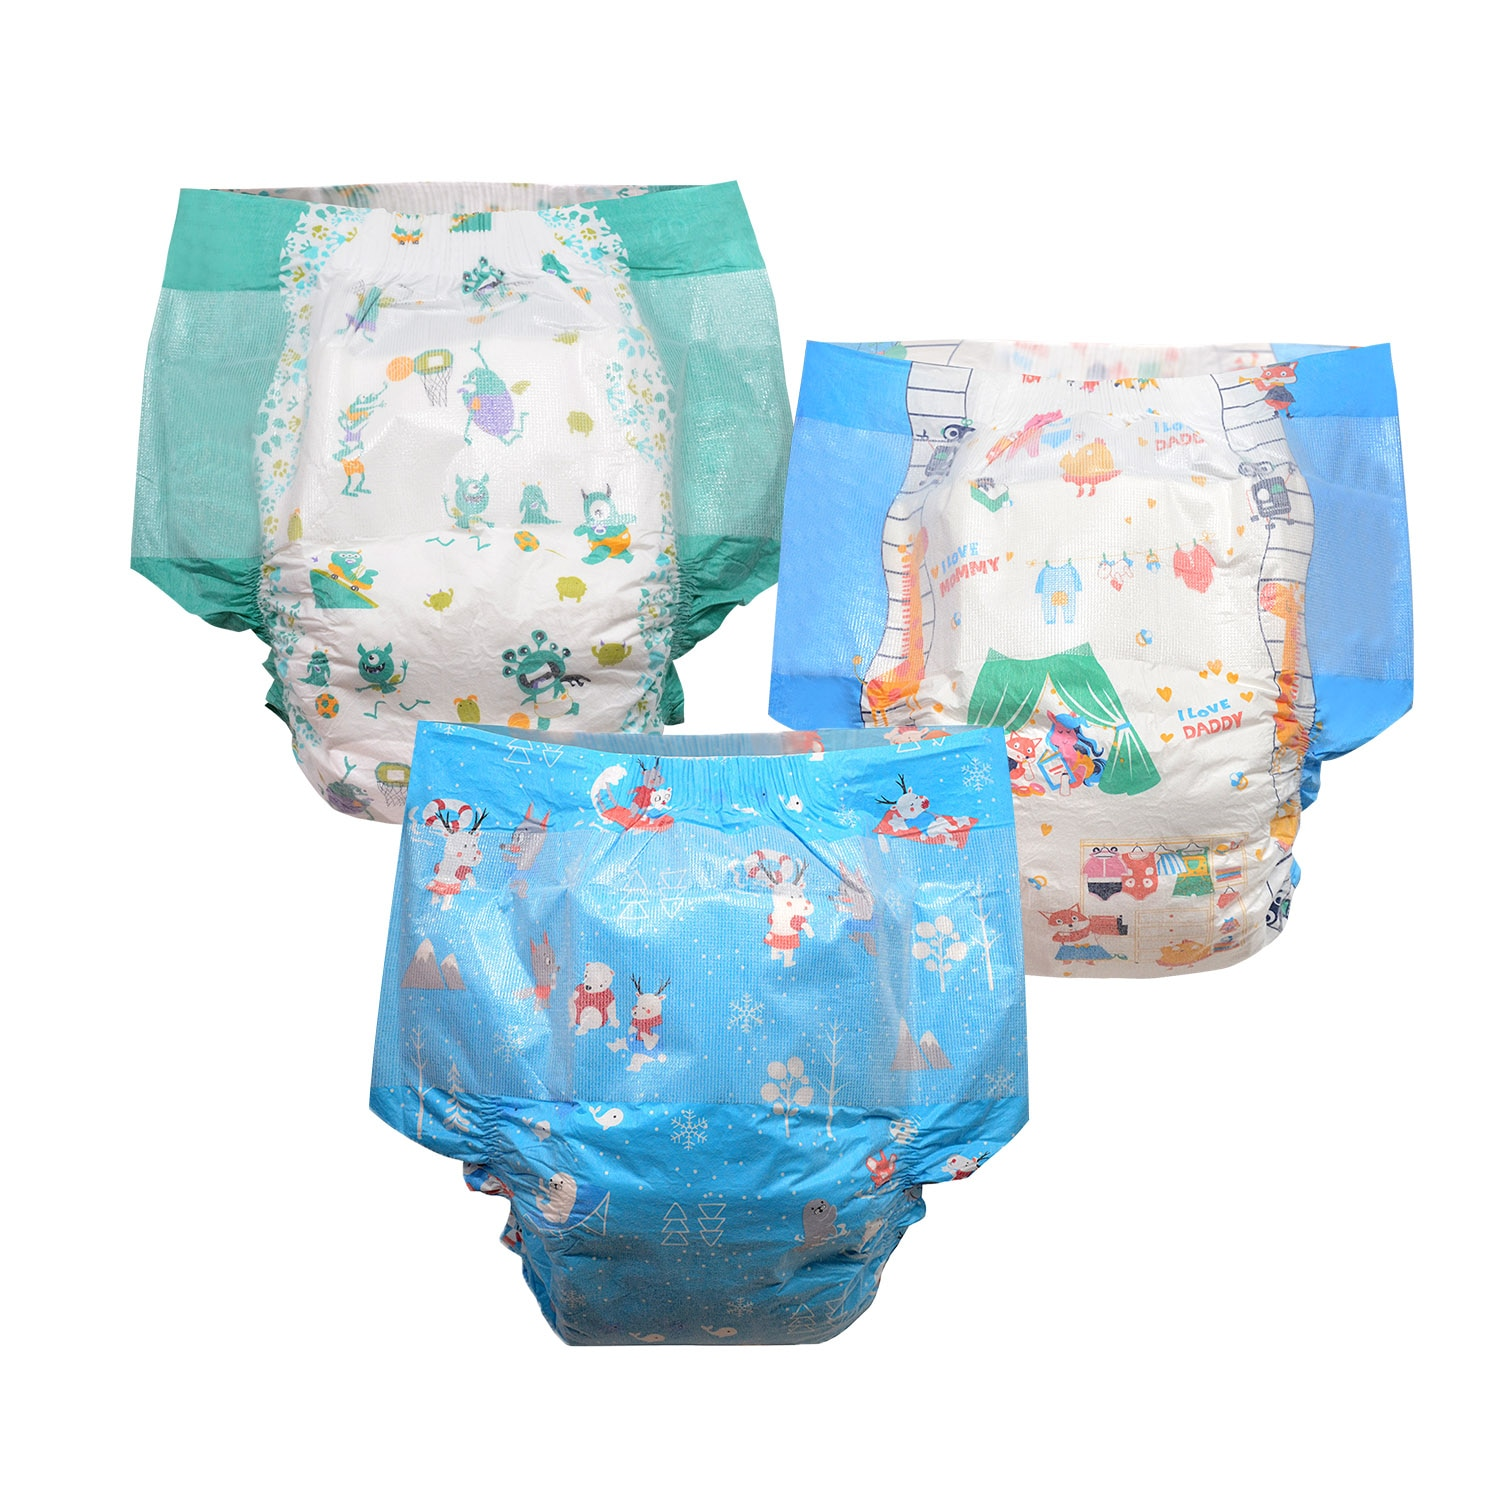 6pcs In A Pack - Rainbow Week Diaper ABDL Boy-Girl Style Extra Large Size Diaper 6000ml Stretchy Waist DDLG Diaper Dummy Dom